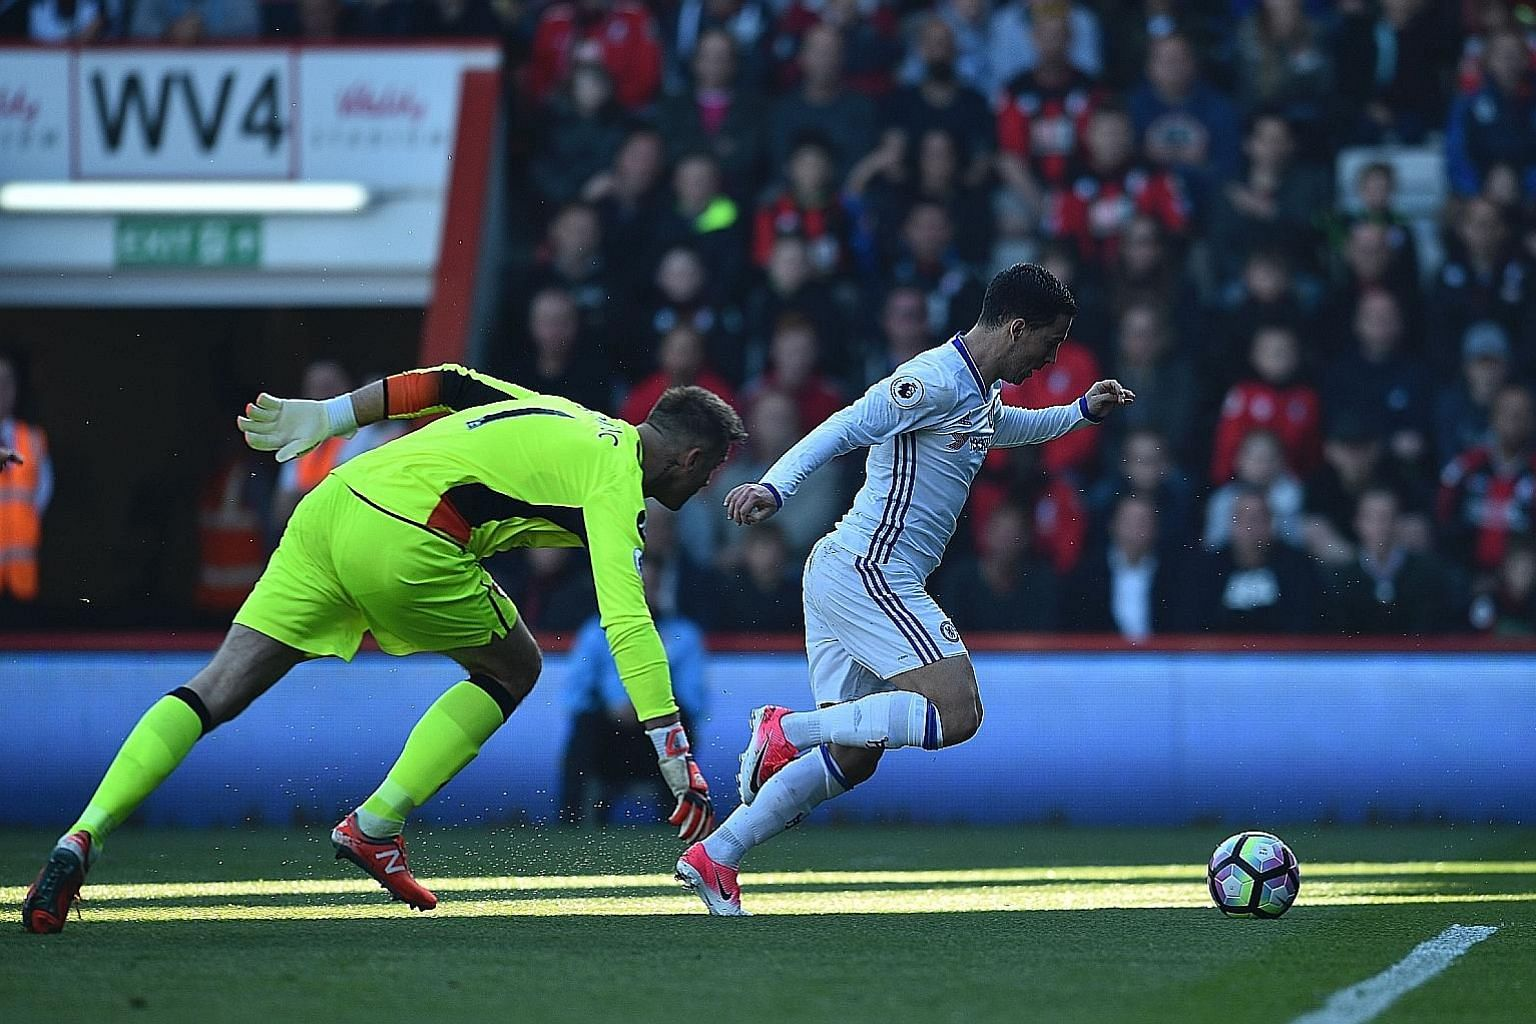 Chelsea midfielder Eden Hazard rounding Bournemouth goalkeeper Artur Boruc in the 20th minute to score their second goal. The Blues ran out comfortable 3-1 winners, and will next face Manchester United.